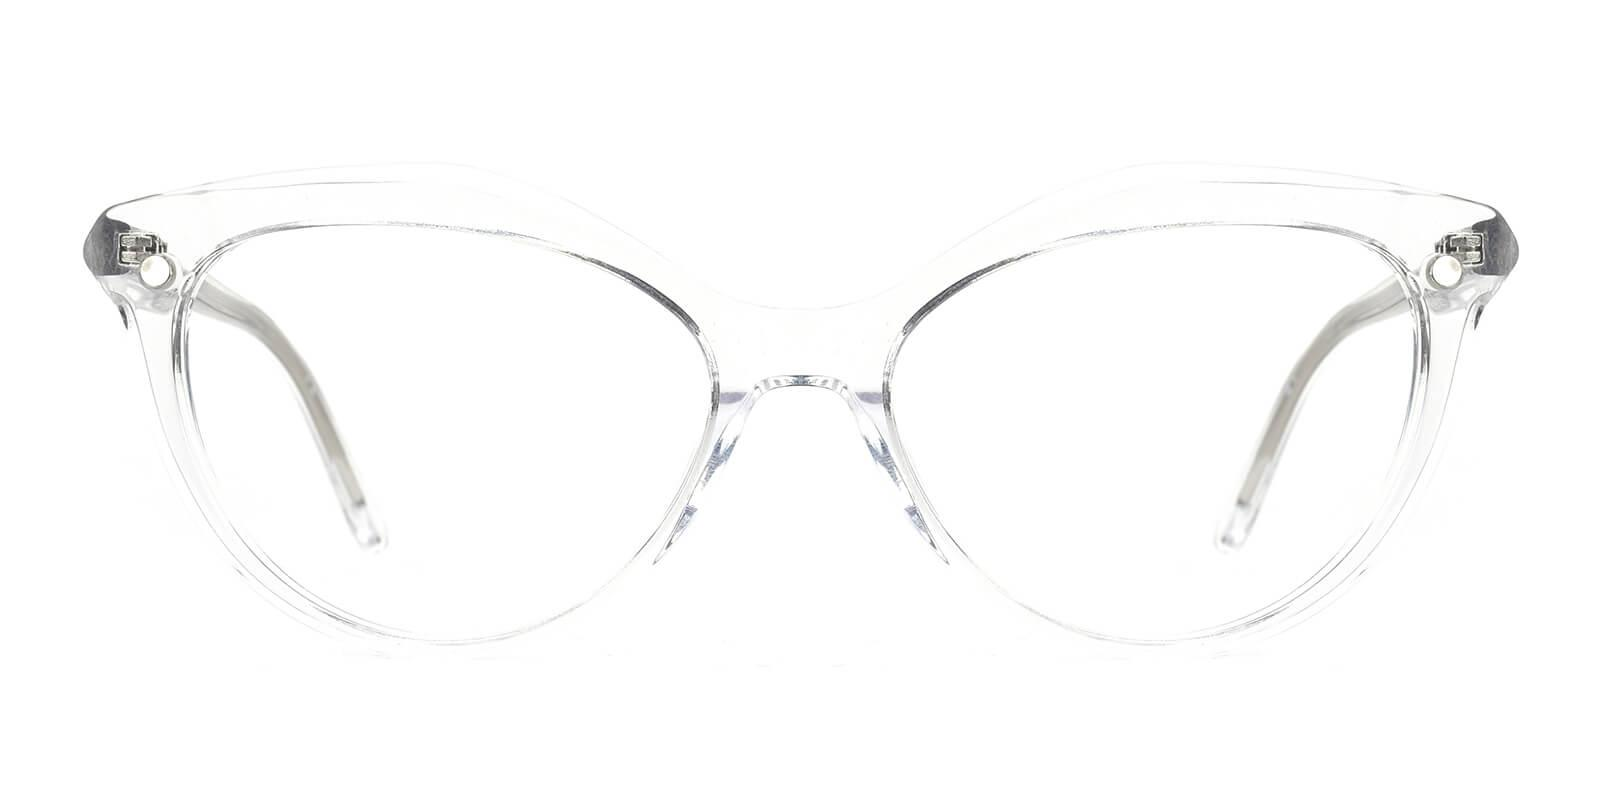 Akali-Translucent-Cat-Acetate-Eyeglasses-additional2